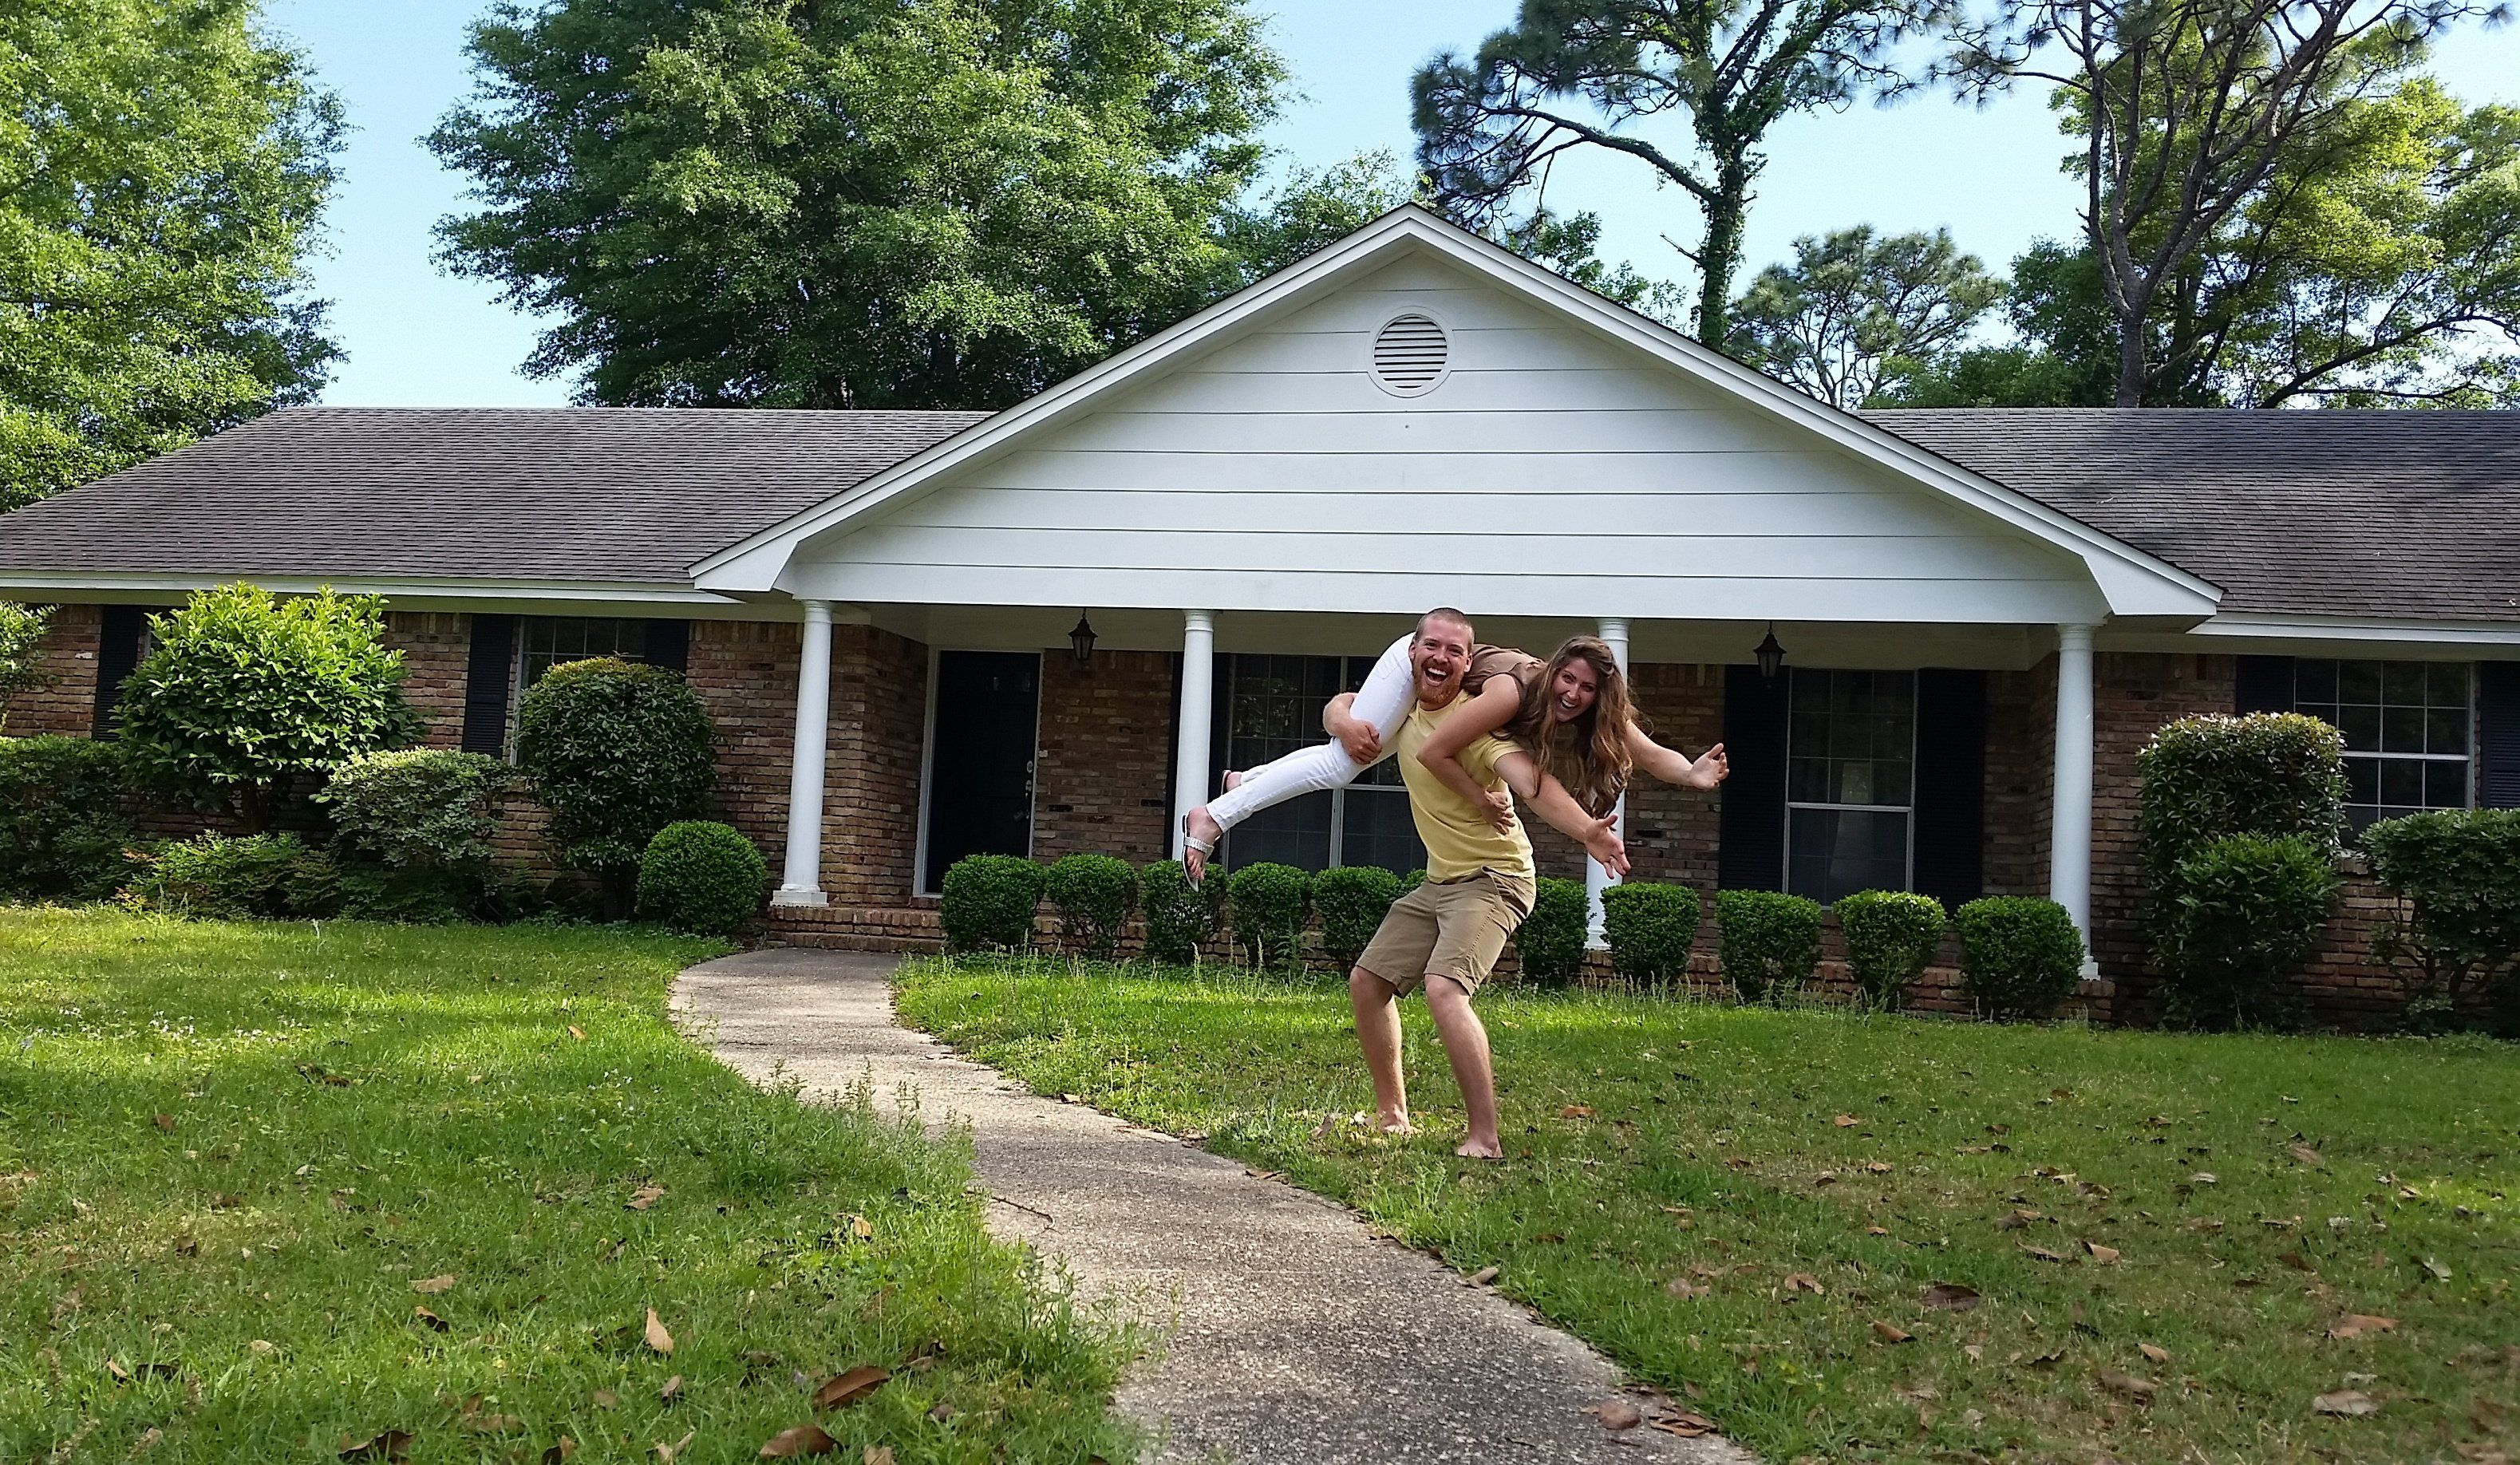 Zac and Shannon Carter, who have been married for two years, pose in front of their newly purchased home in Pensacola, Florida.